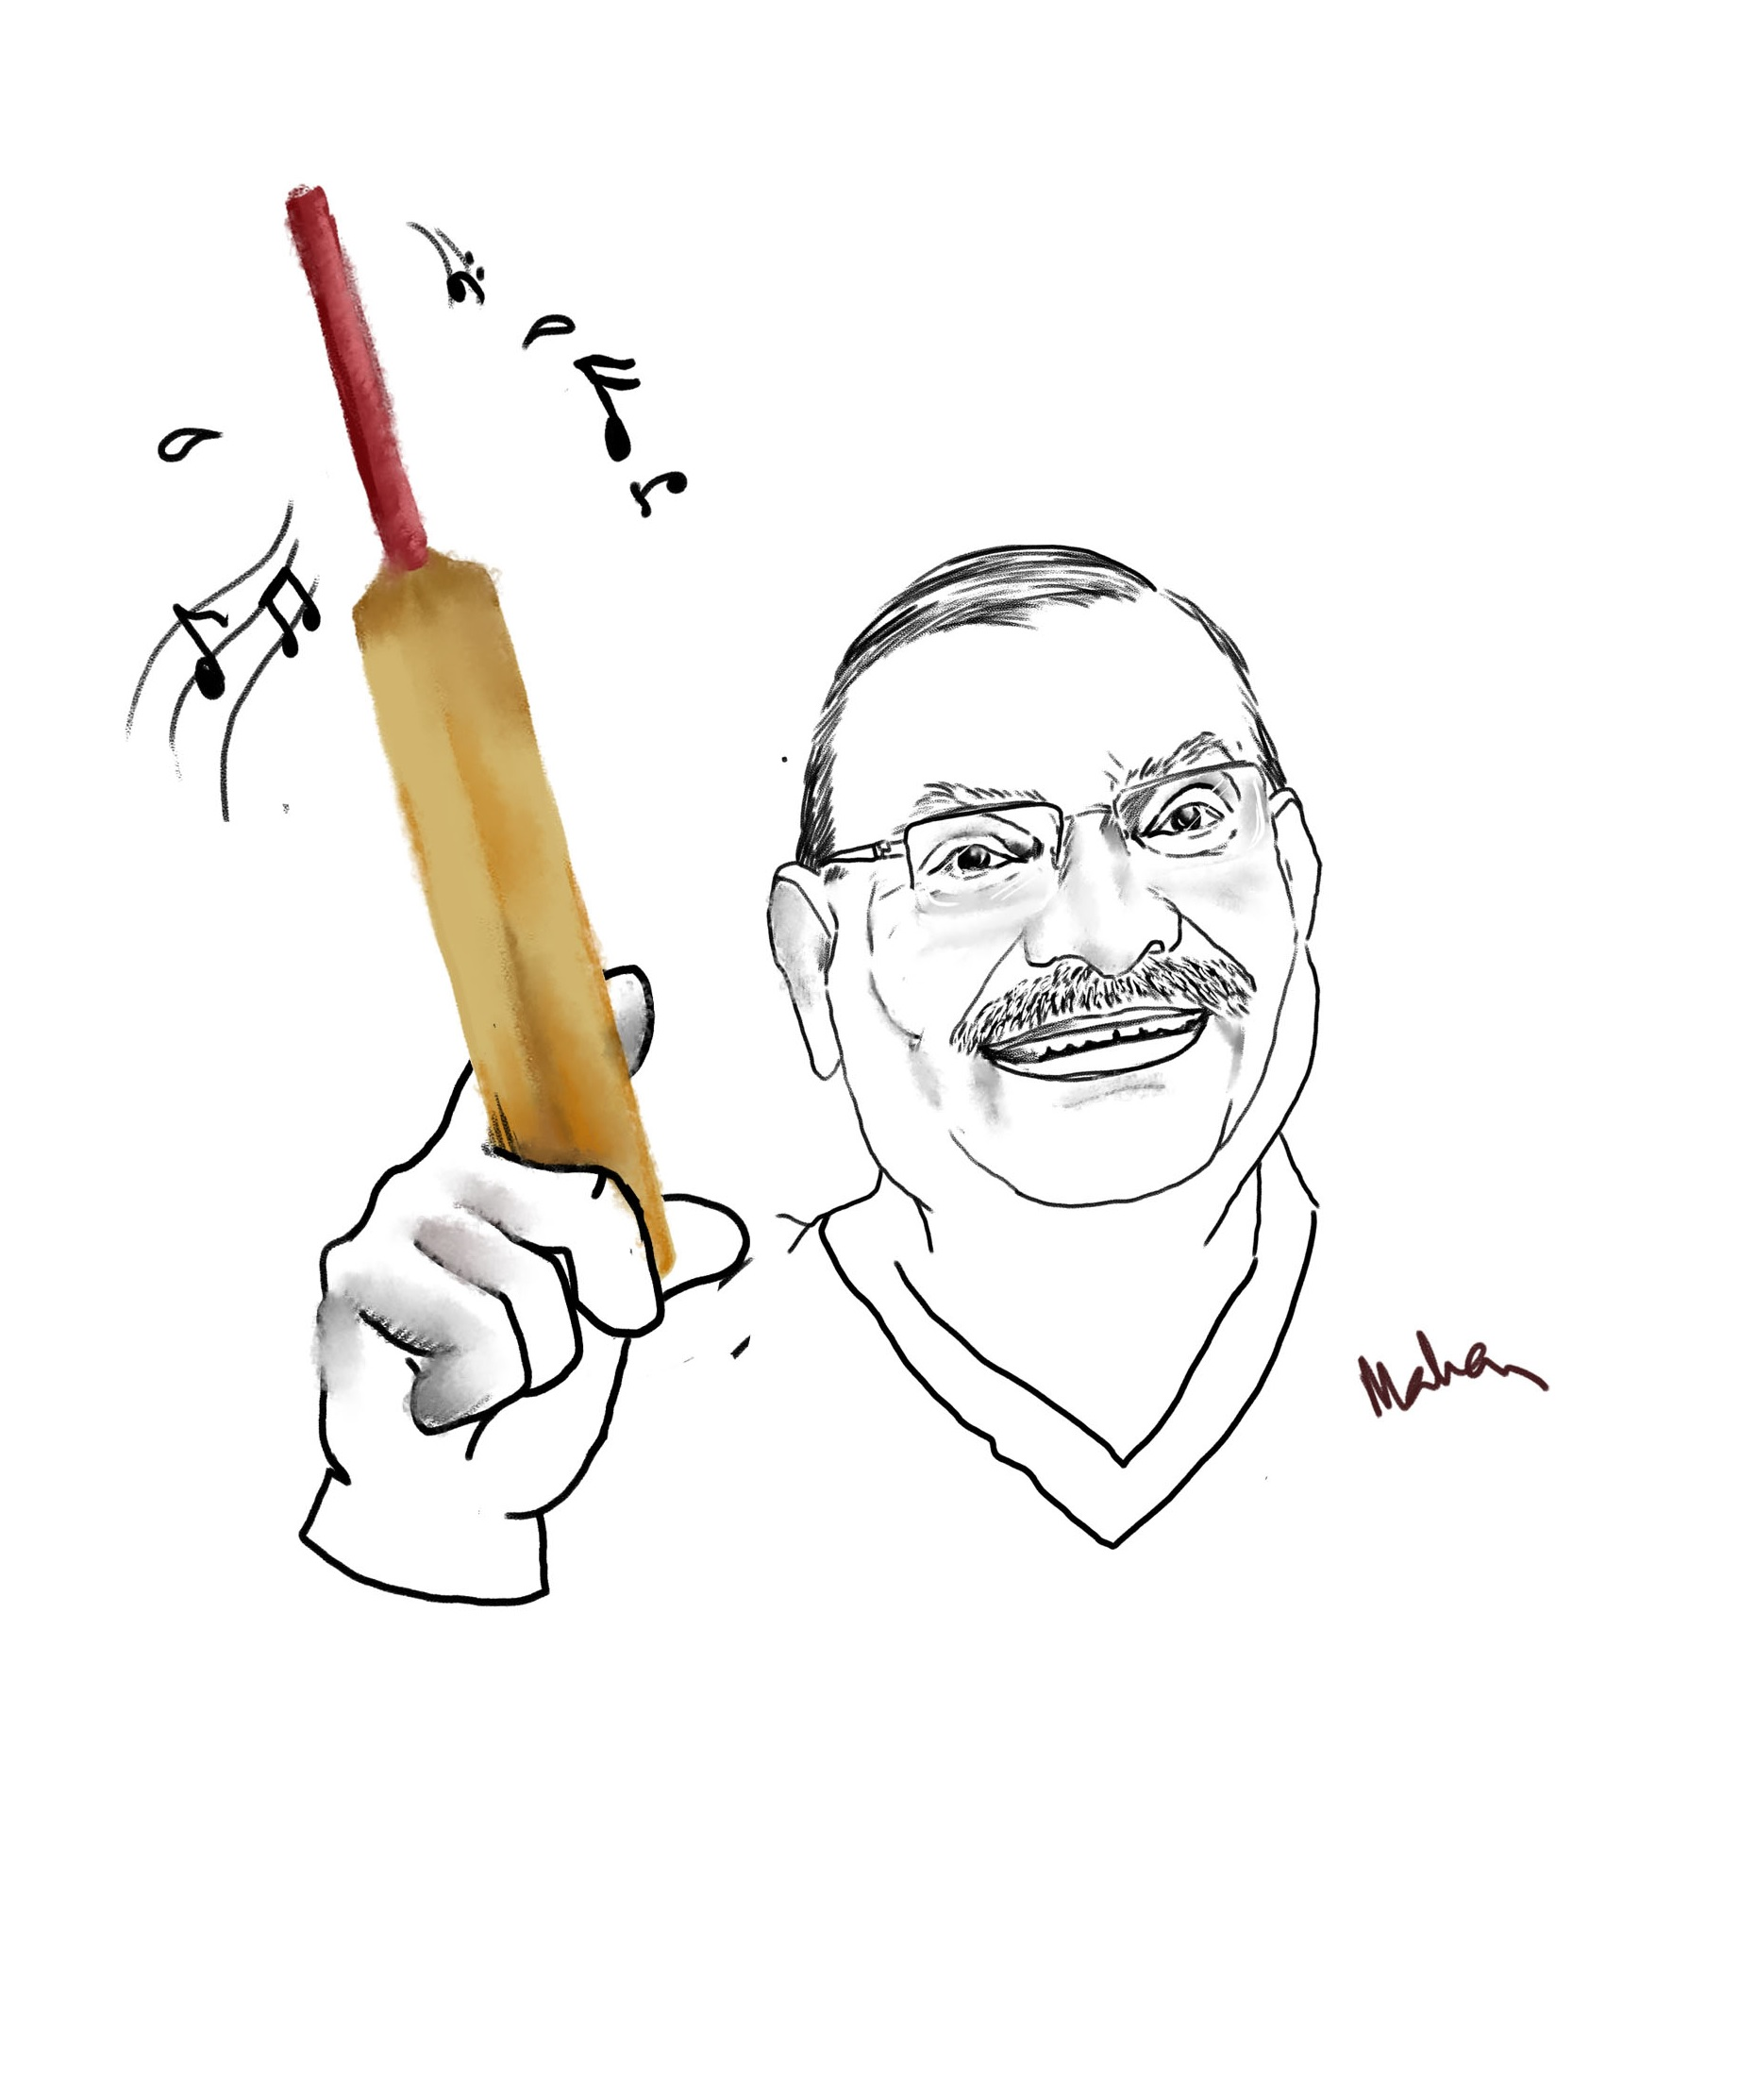 Pradip Dhole - The Doctor with a thing for cricket, a la WG